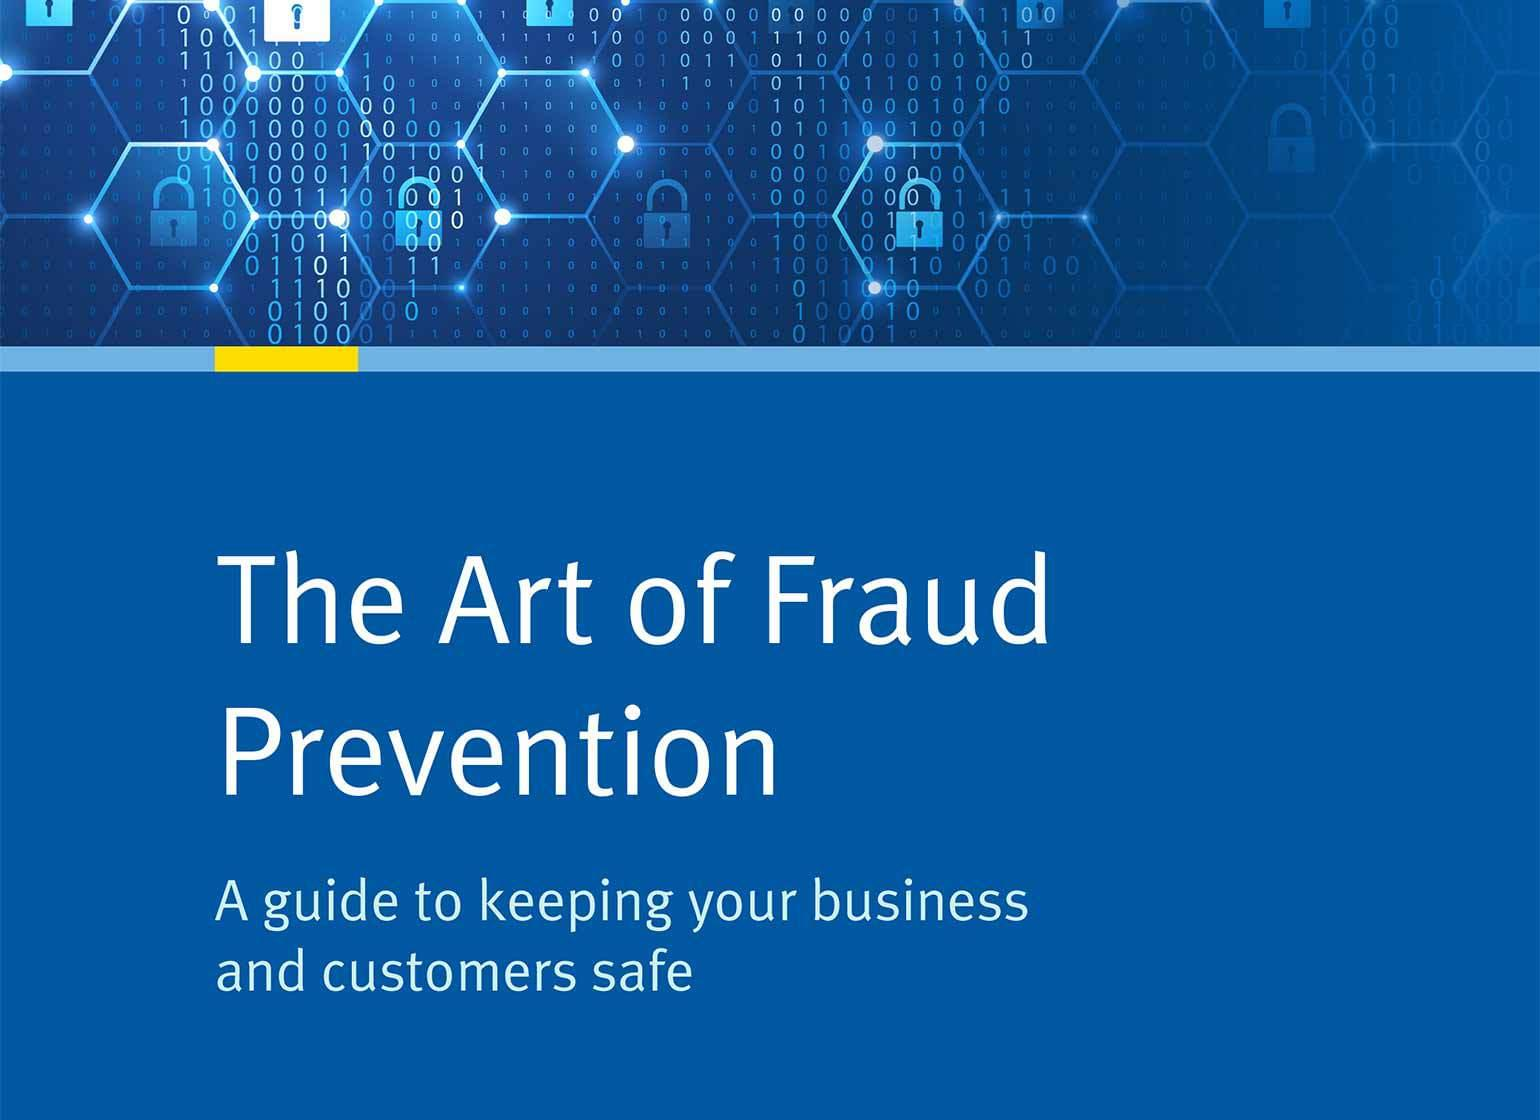 The Art of Fraud Prevention: A guide to keeping your business and customers safe